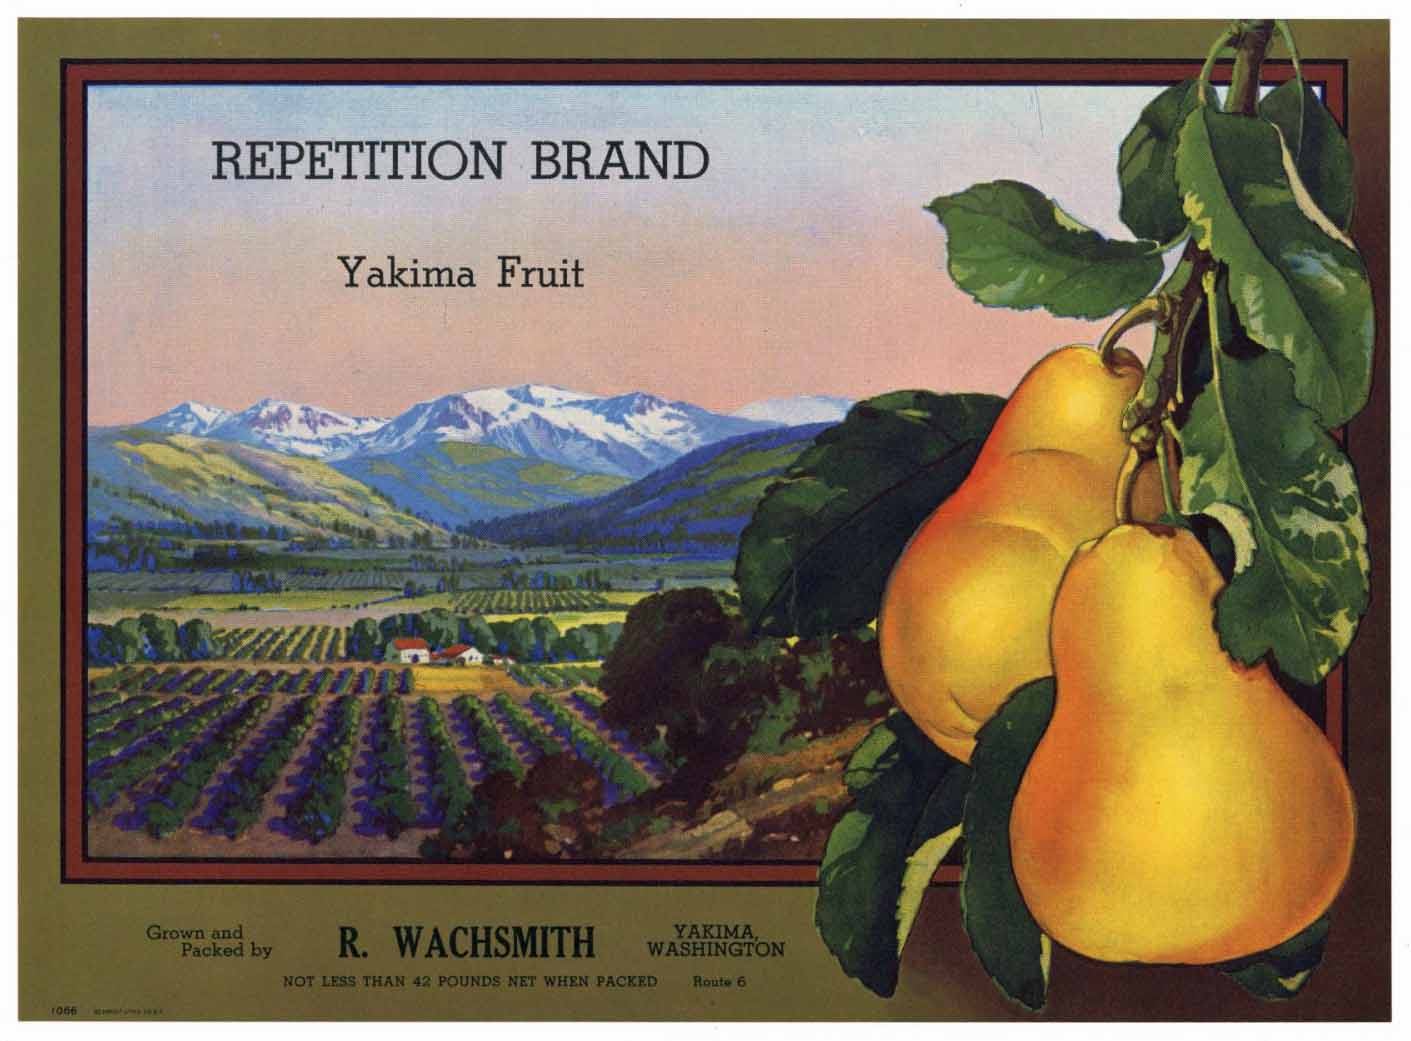 REPETITION Brand Vintage Pear Crate Label s (P190)